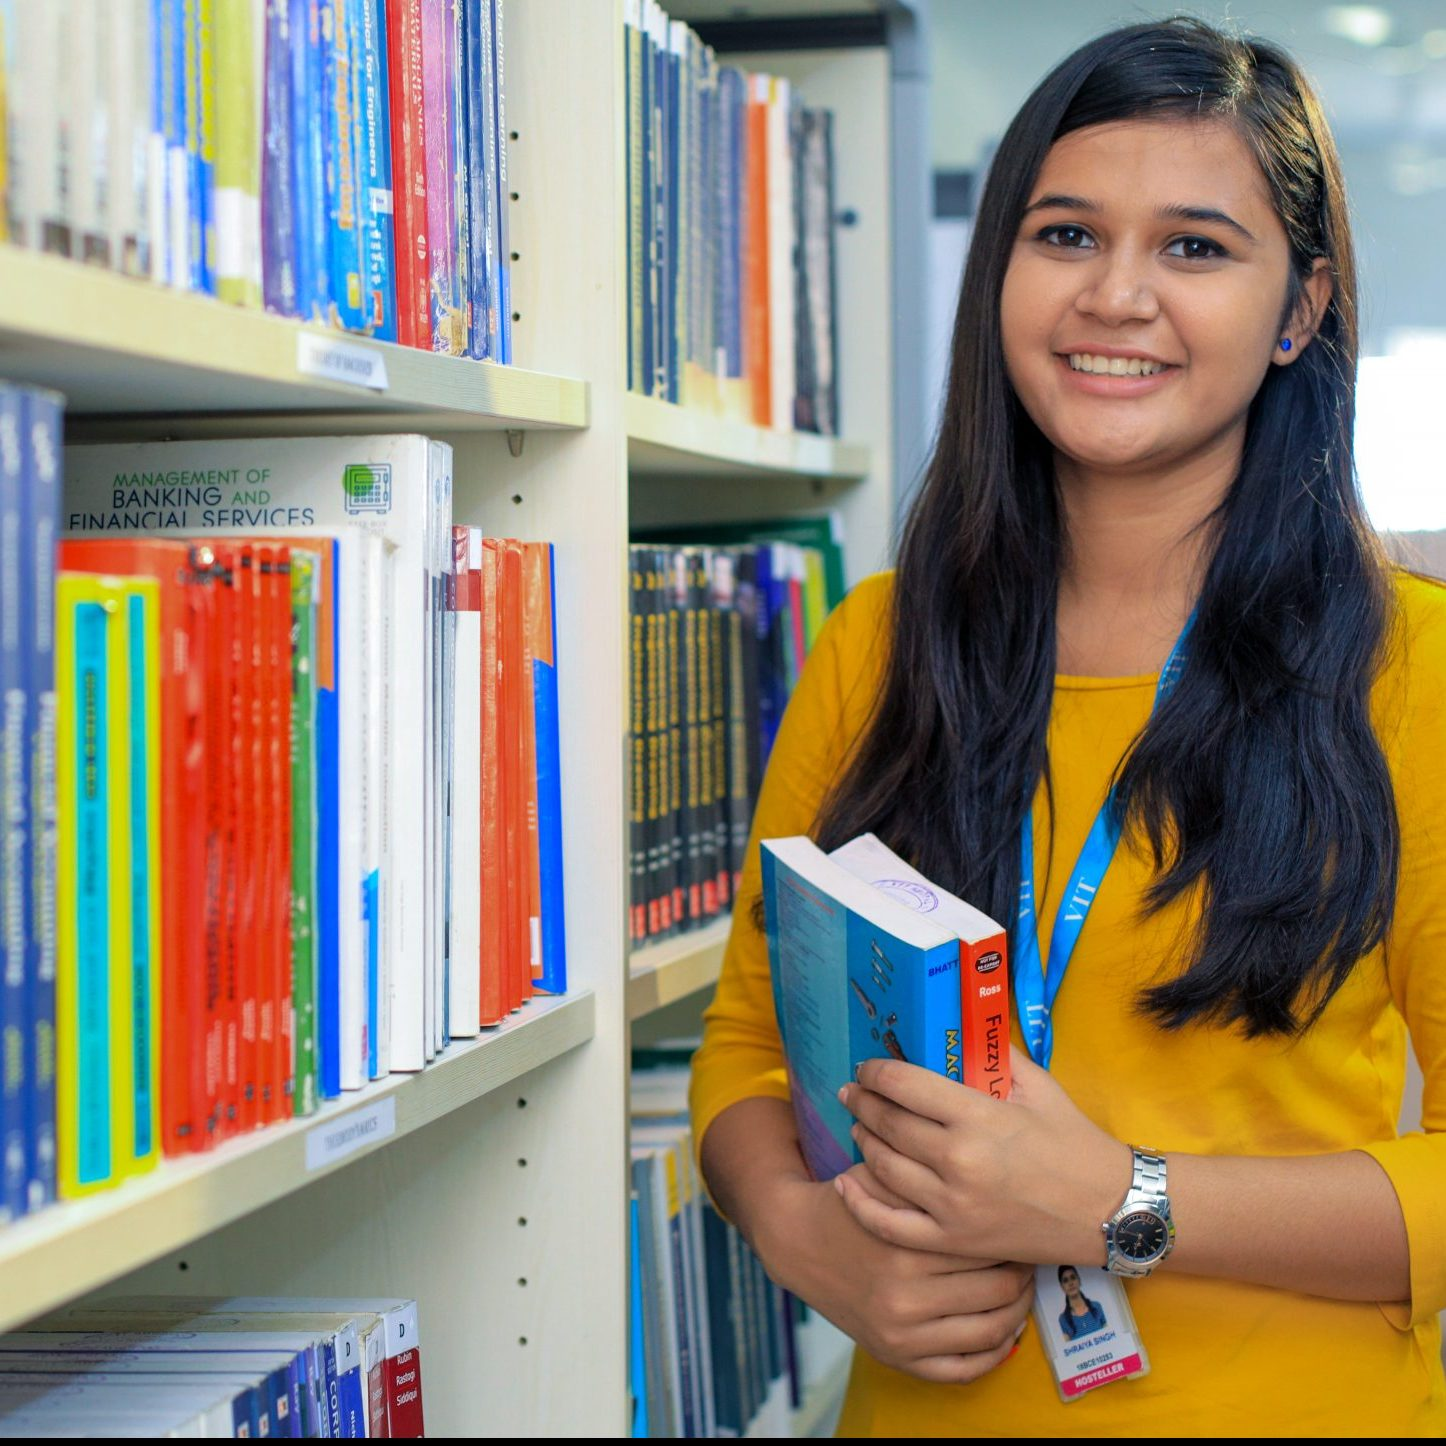 Library VIT Bhopal  - Best University in Central India -  8-scaled-e1581404877115